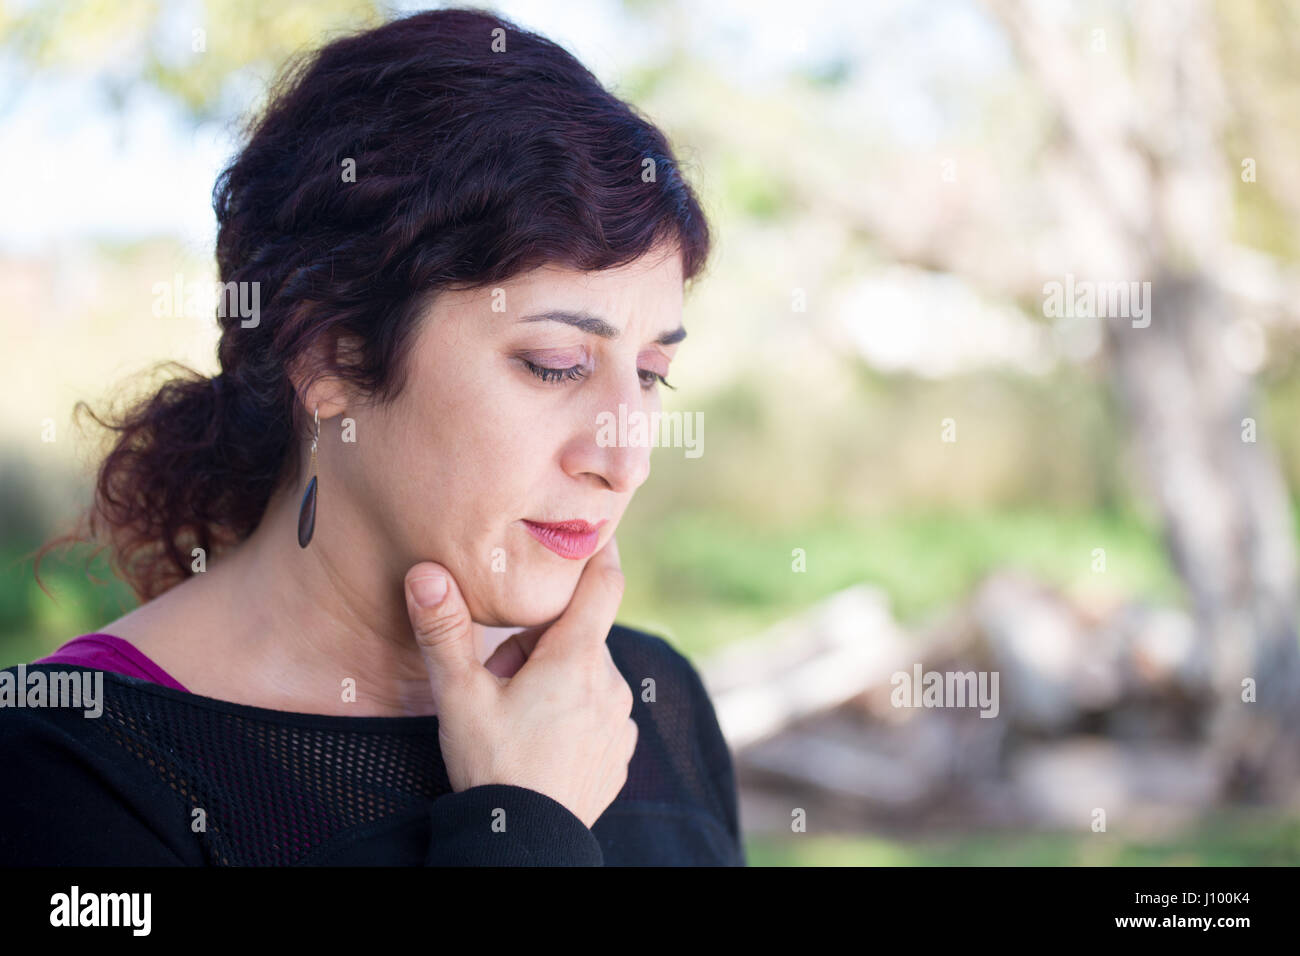 Closeup portrait of philosophical thinking dark hair woman hand on chin, deep in thought, isolated outside outdoors - Stock Image